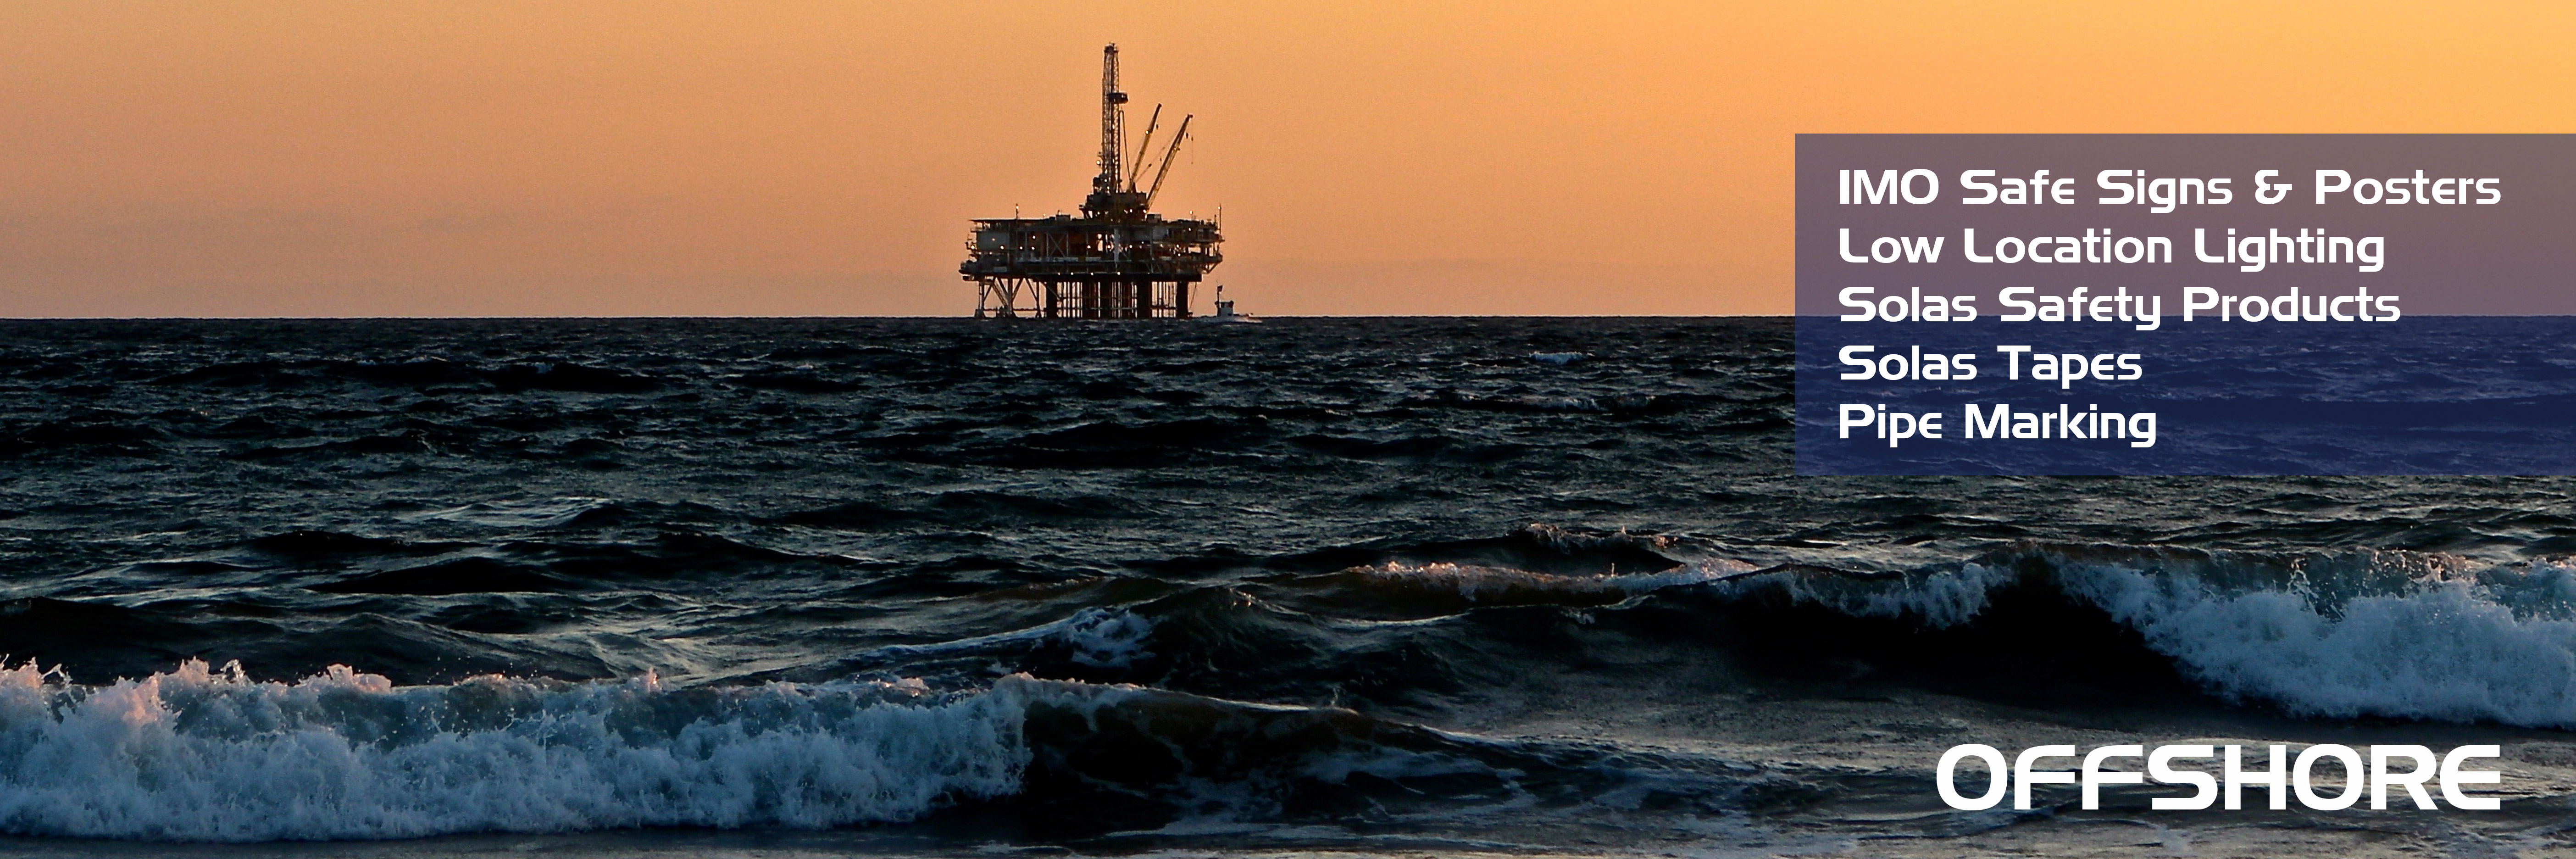 OFFSHORE T-ISS Safety Suppliers